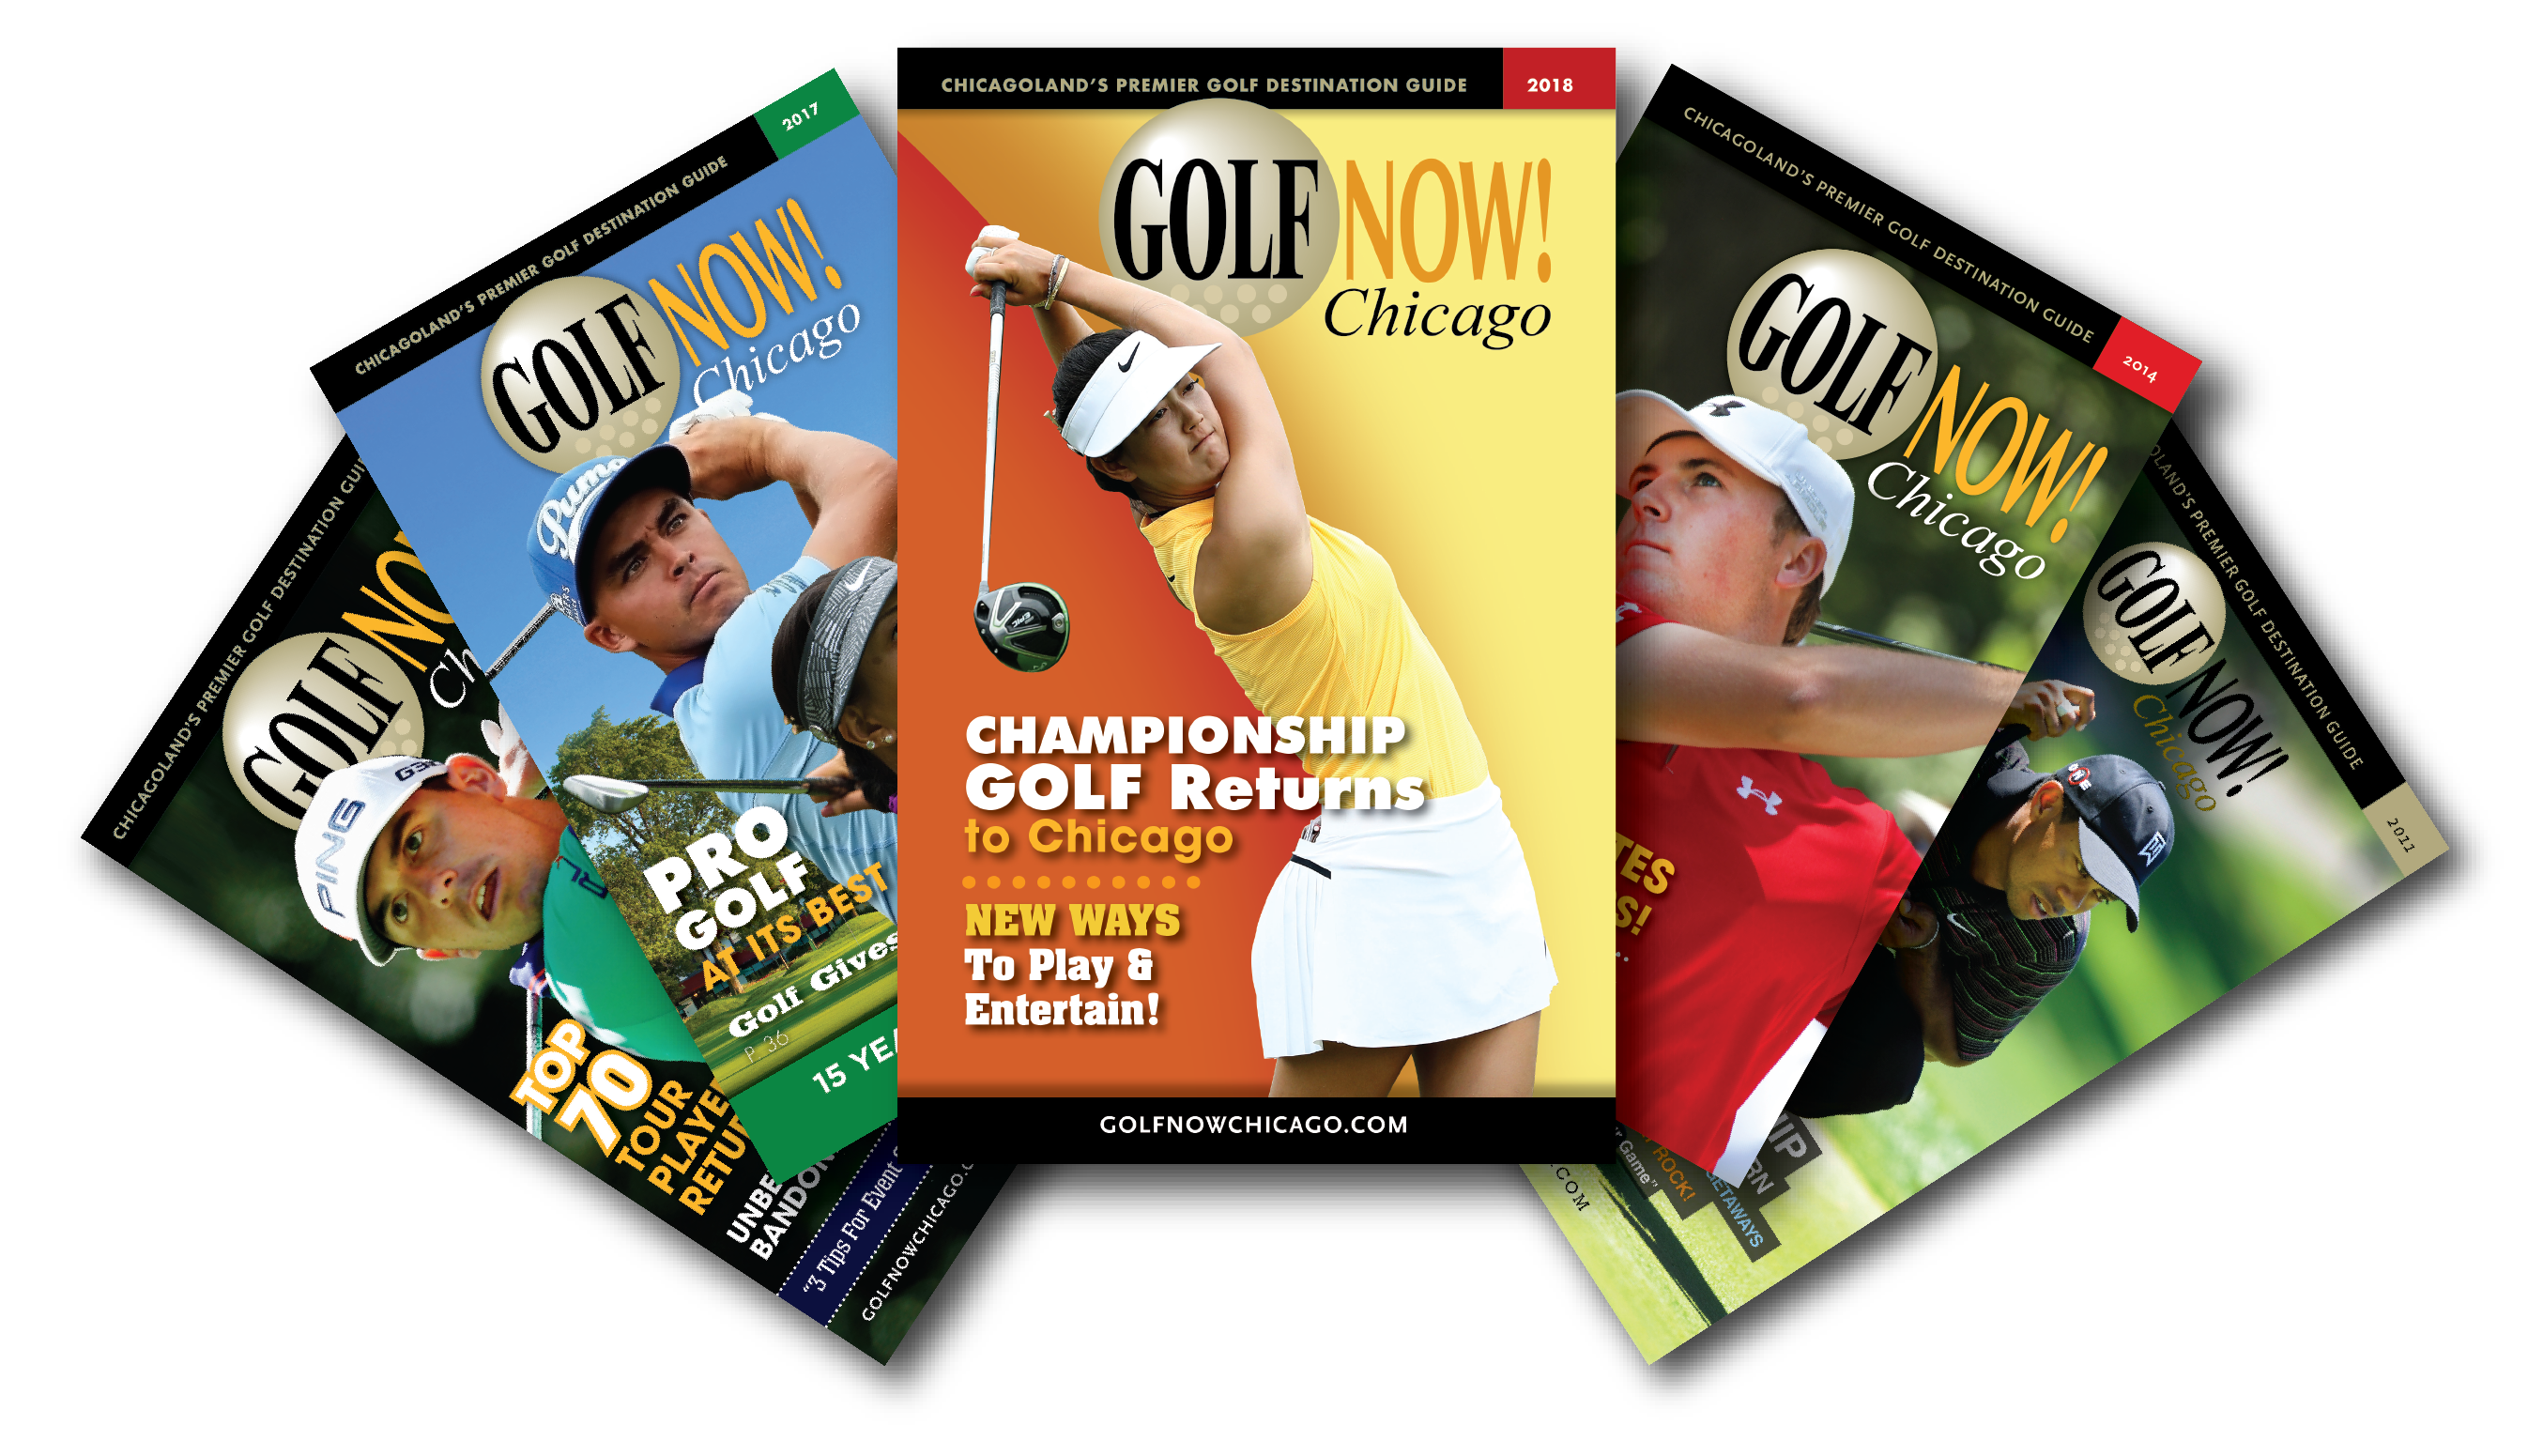 GOLF NOW! Chicago, Chicagoland's Premier Golf Destination Guide